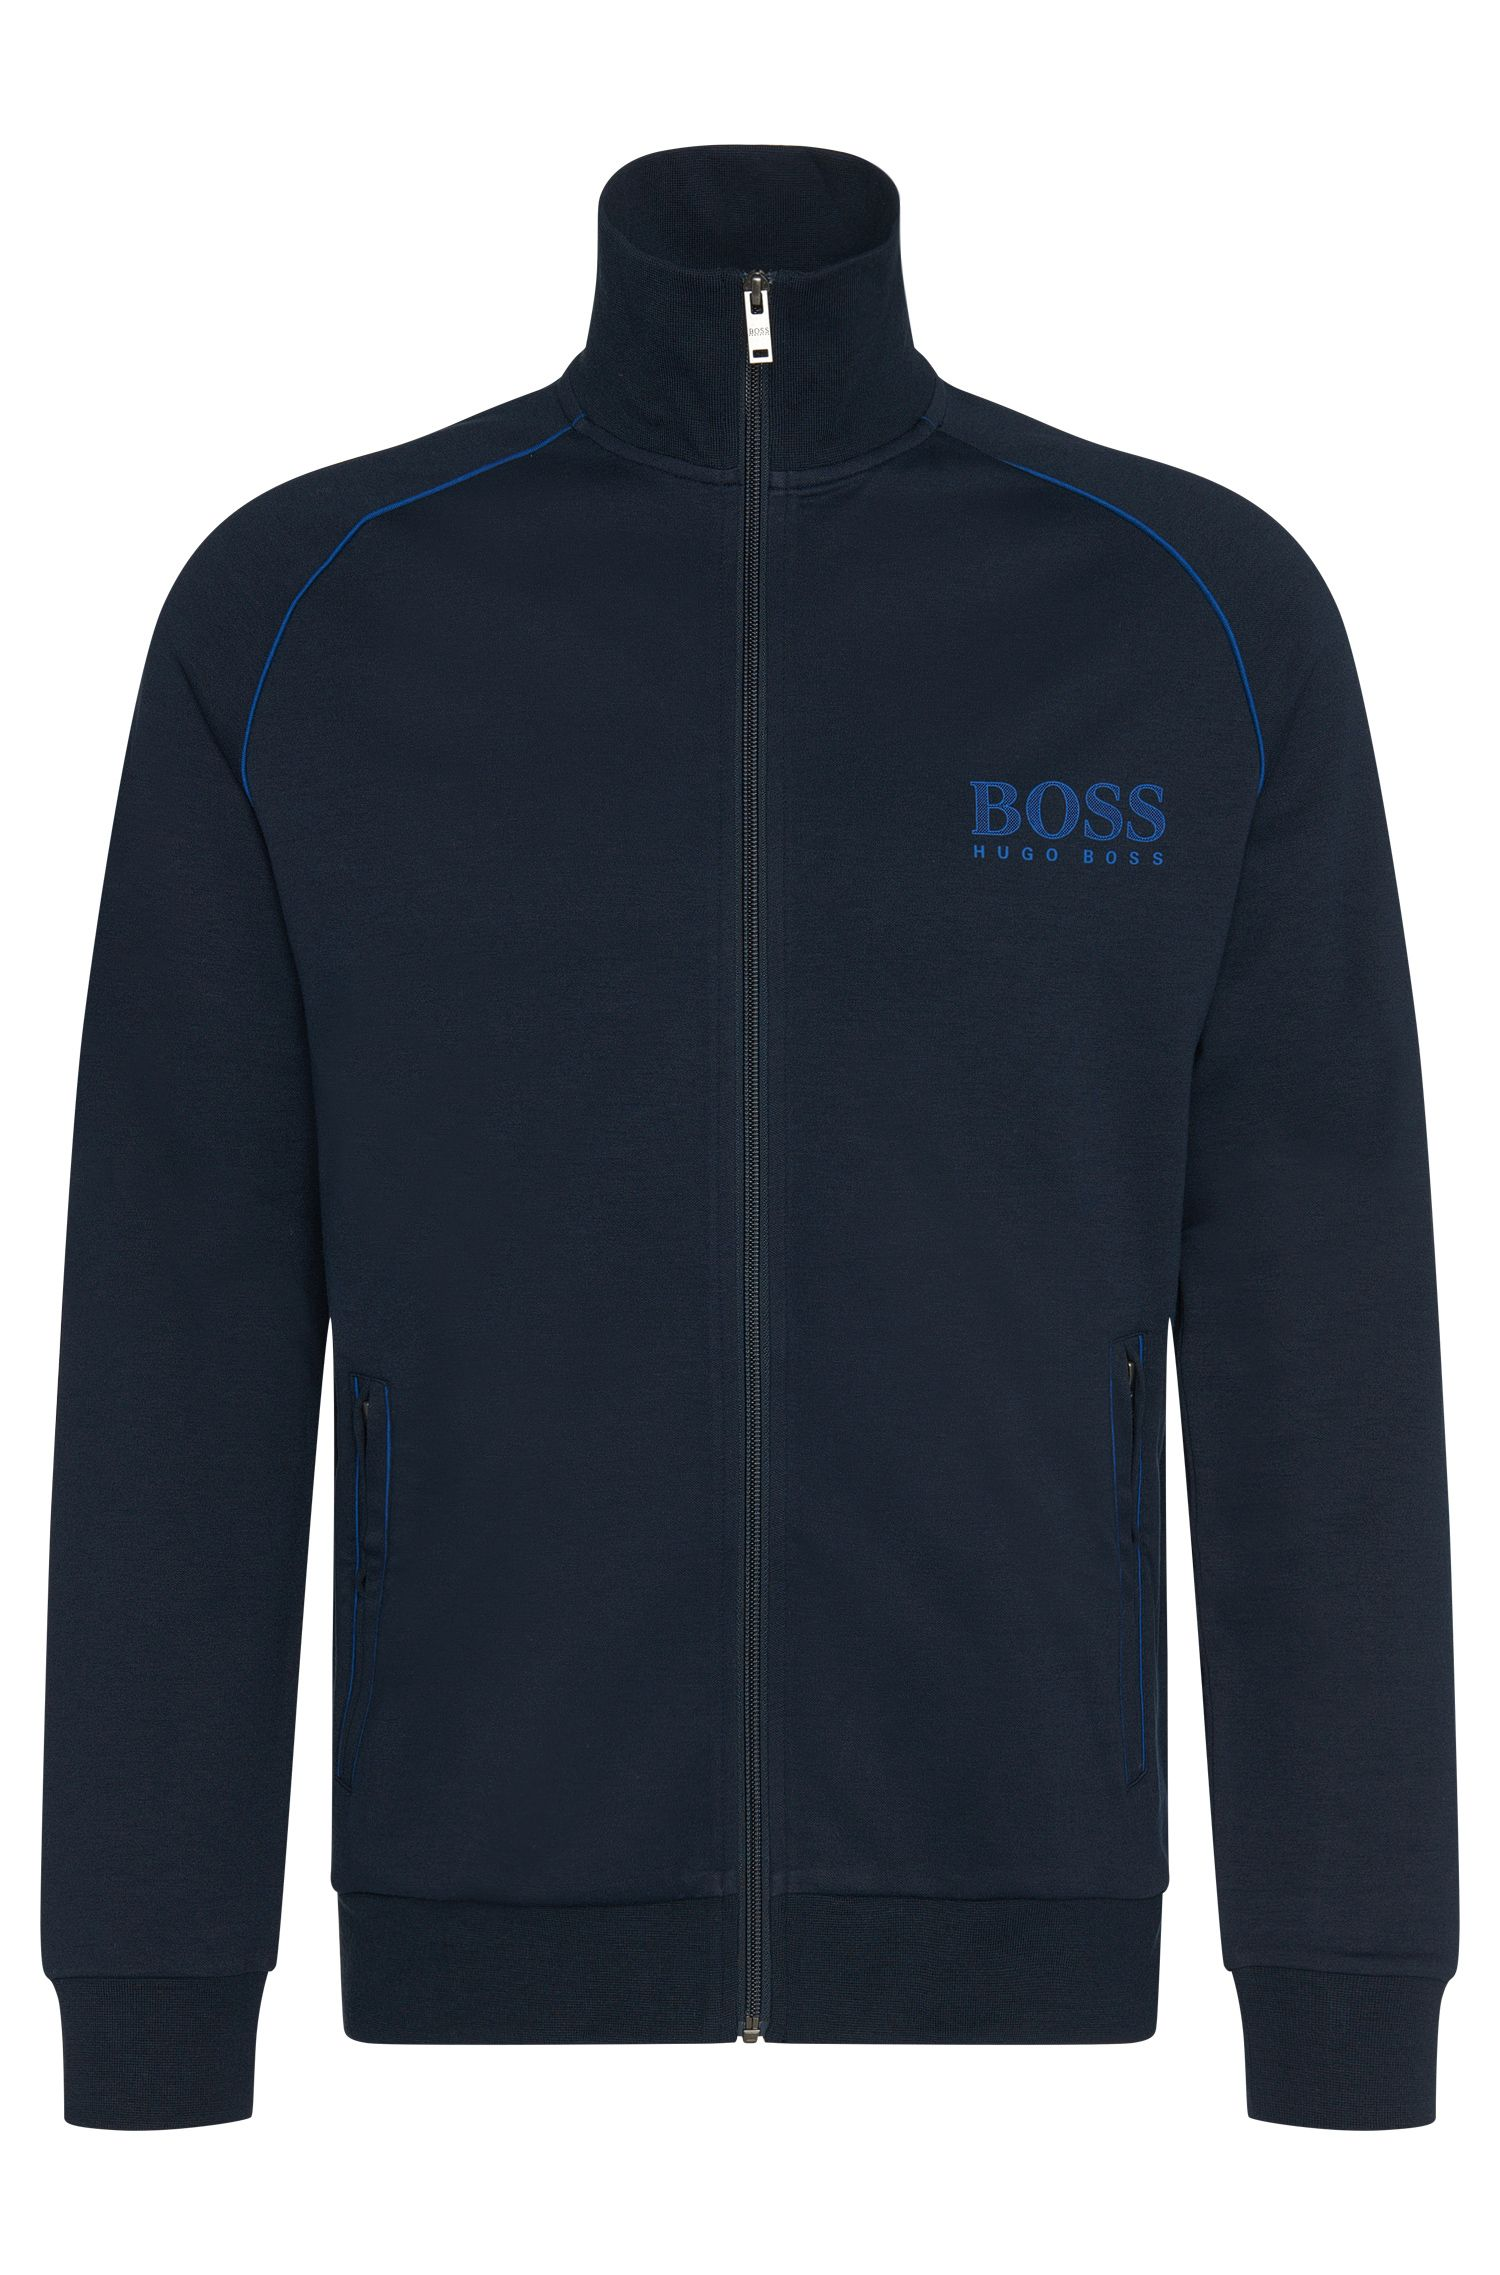 Sweatshirt jacket in cotton blend with colour-contrasting piping: 'Jacket Zip'